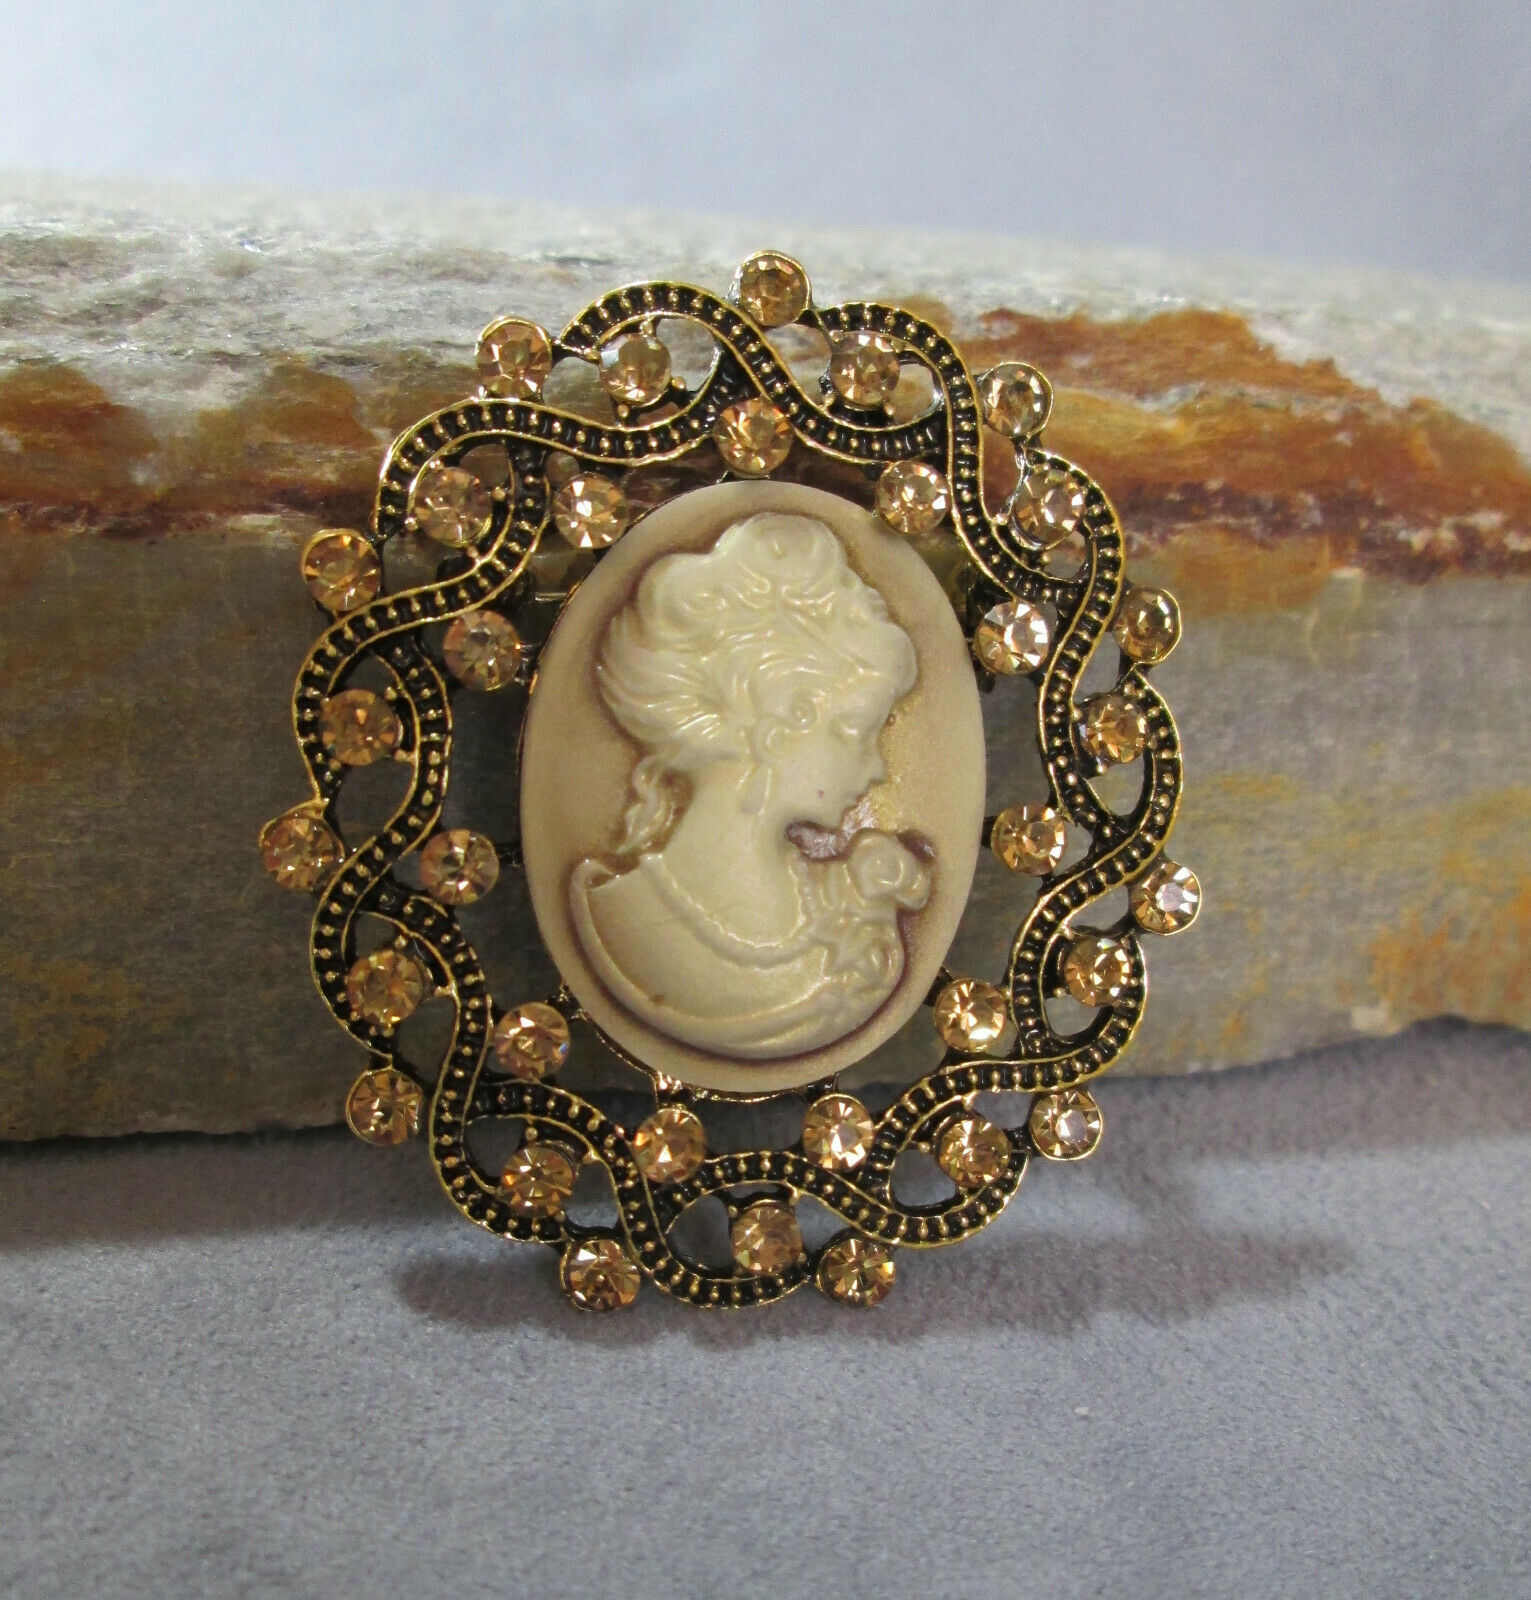 Primary image for Sparkling Cameo Brooch, Victorian Concept with Modern Sparkle, Style No. 01